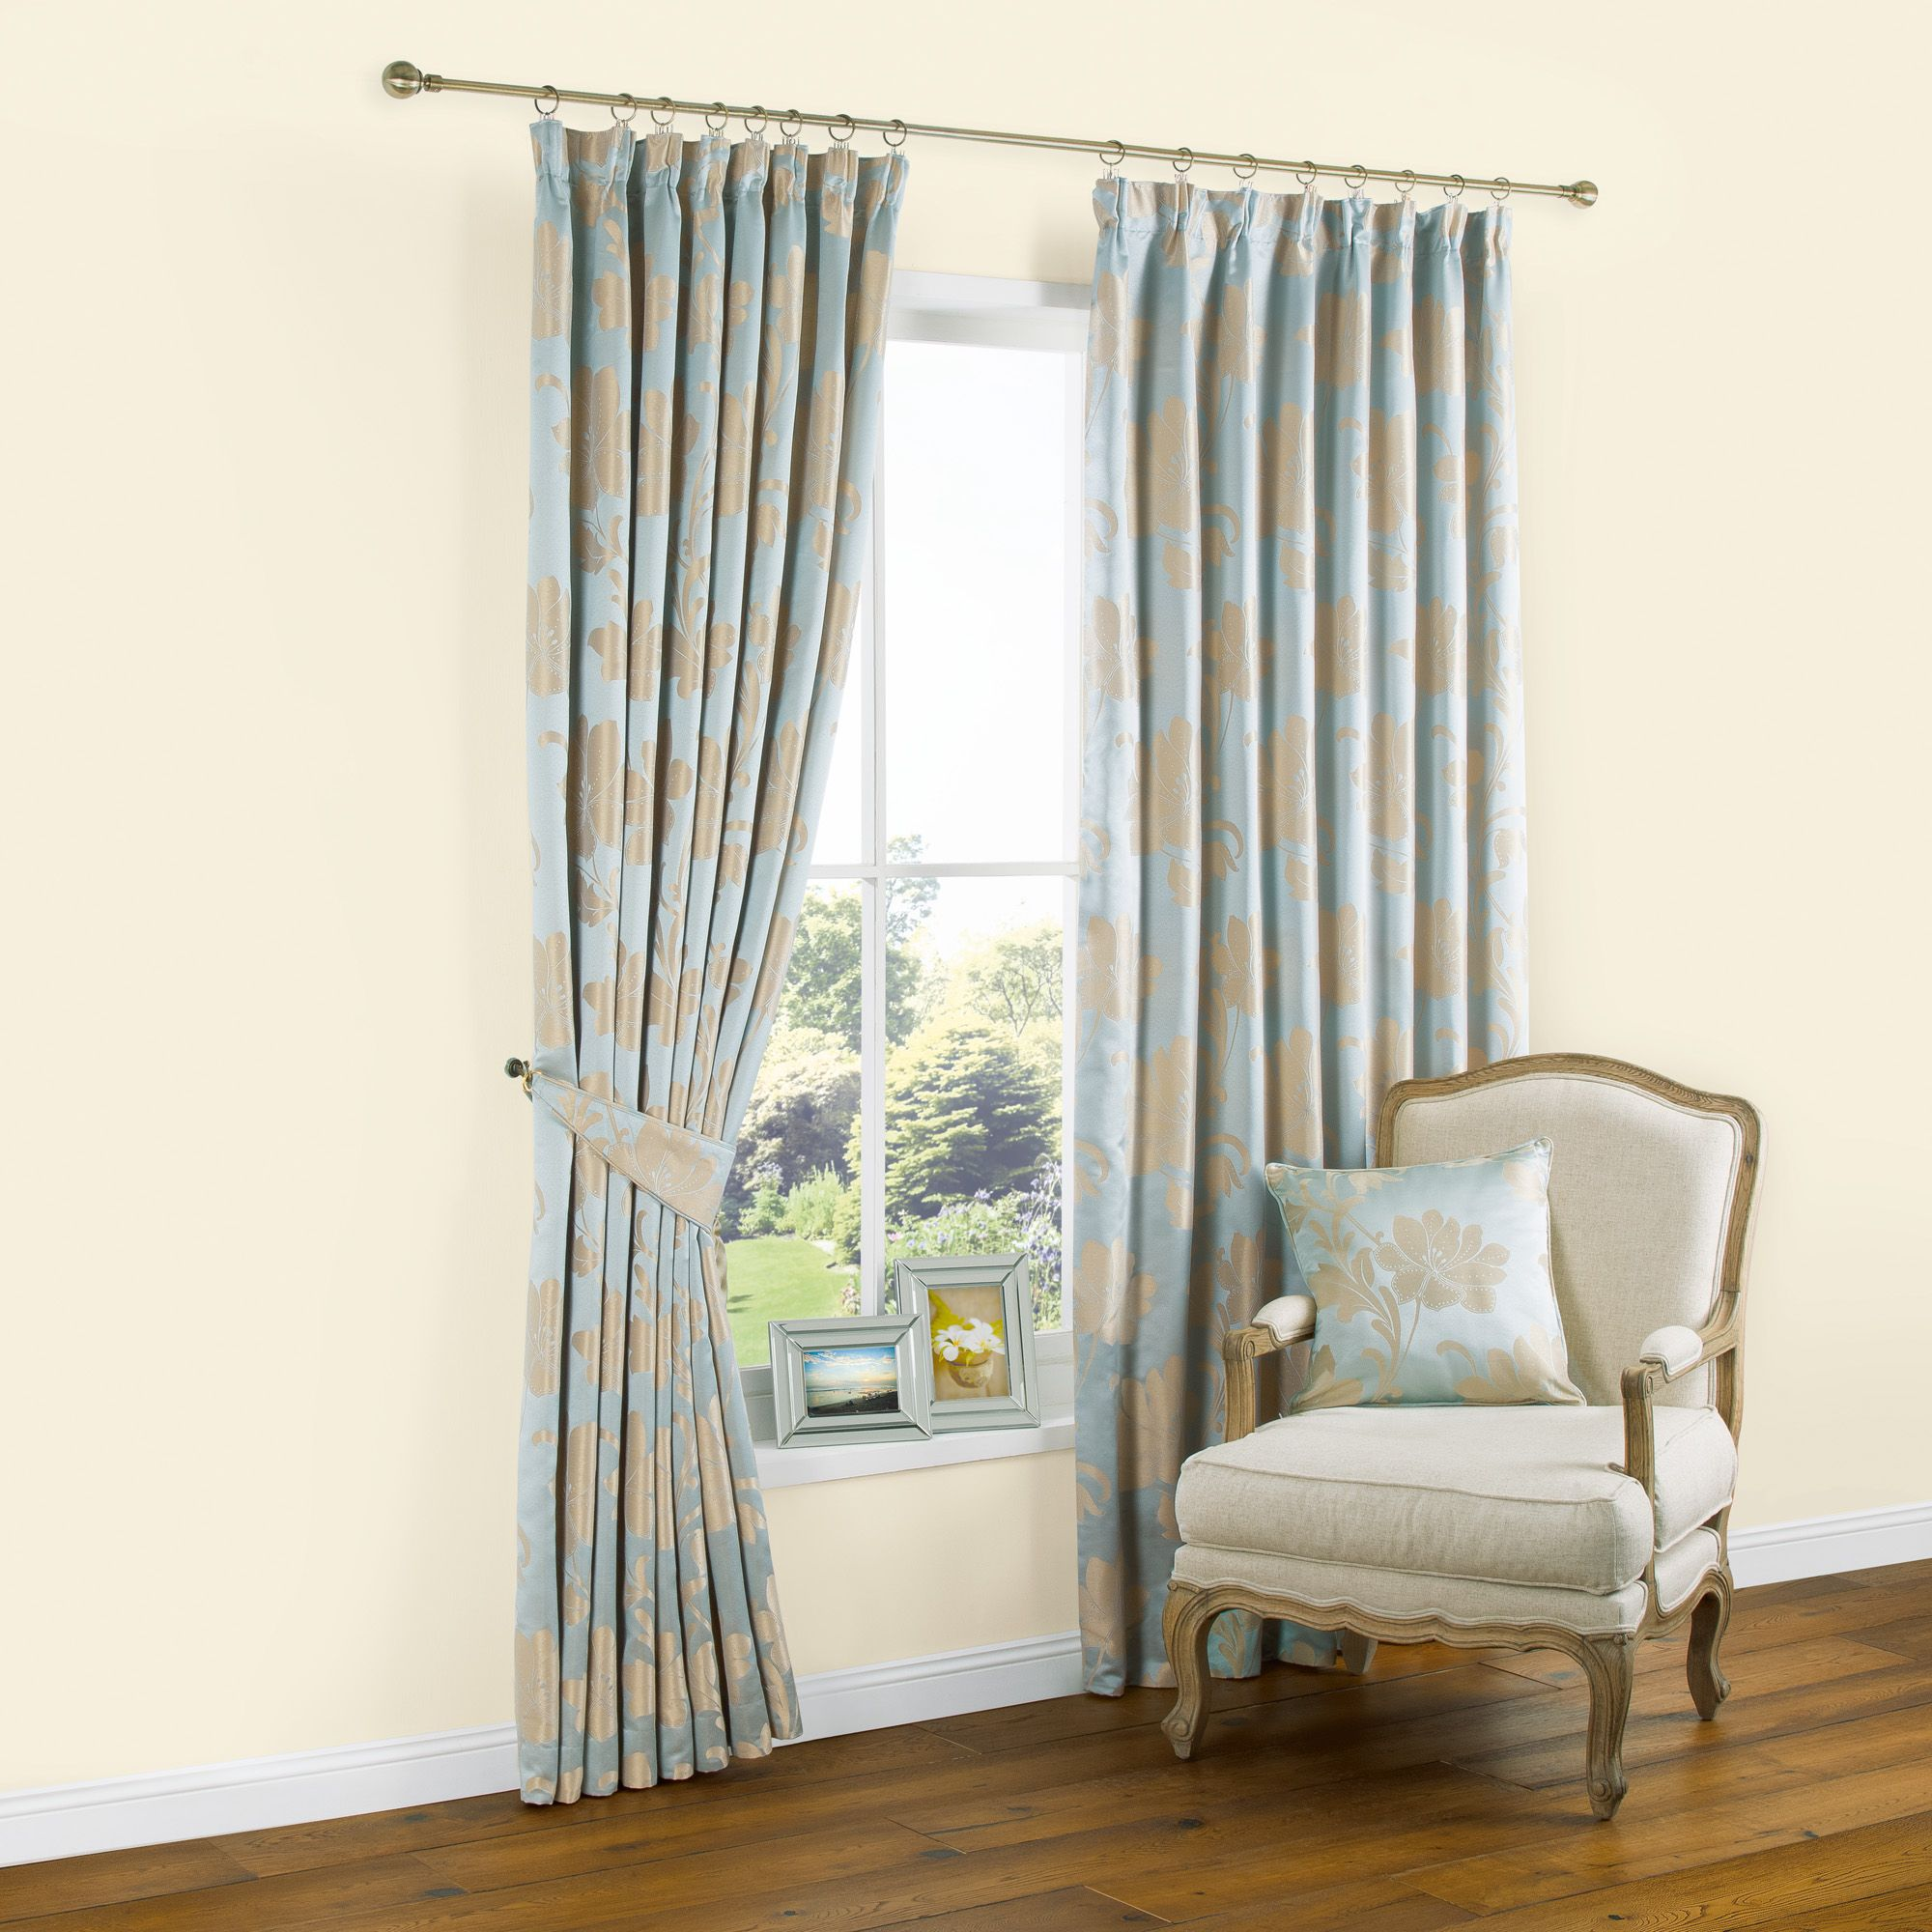 Caraway Duck Egg Gold Effect Floral Jacquard Pencil Pleat Lined Curtains W 228 Cm L 228 Cm